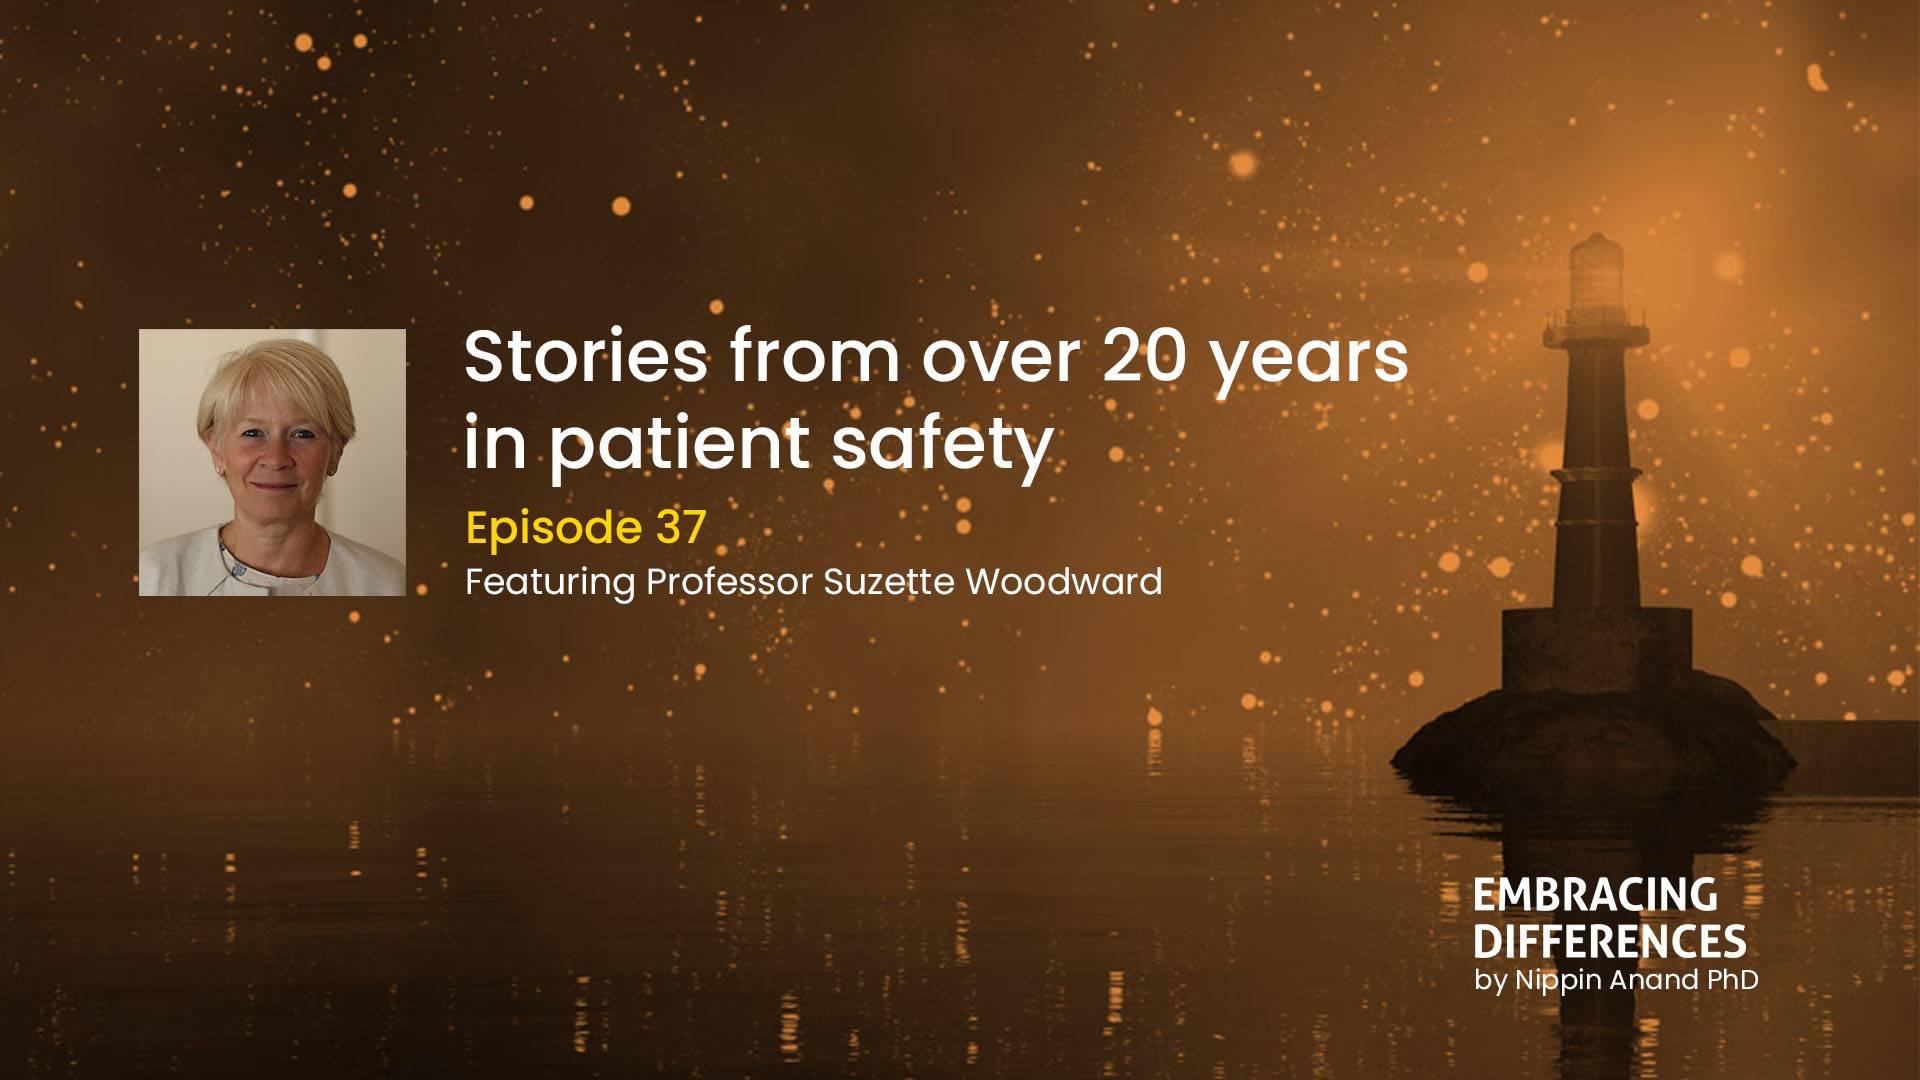 Stories from over 20 years in patient safety